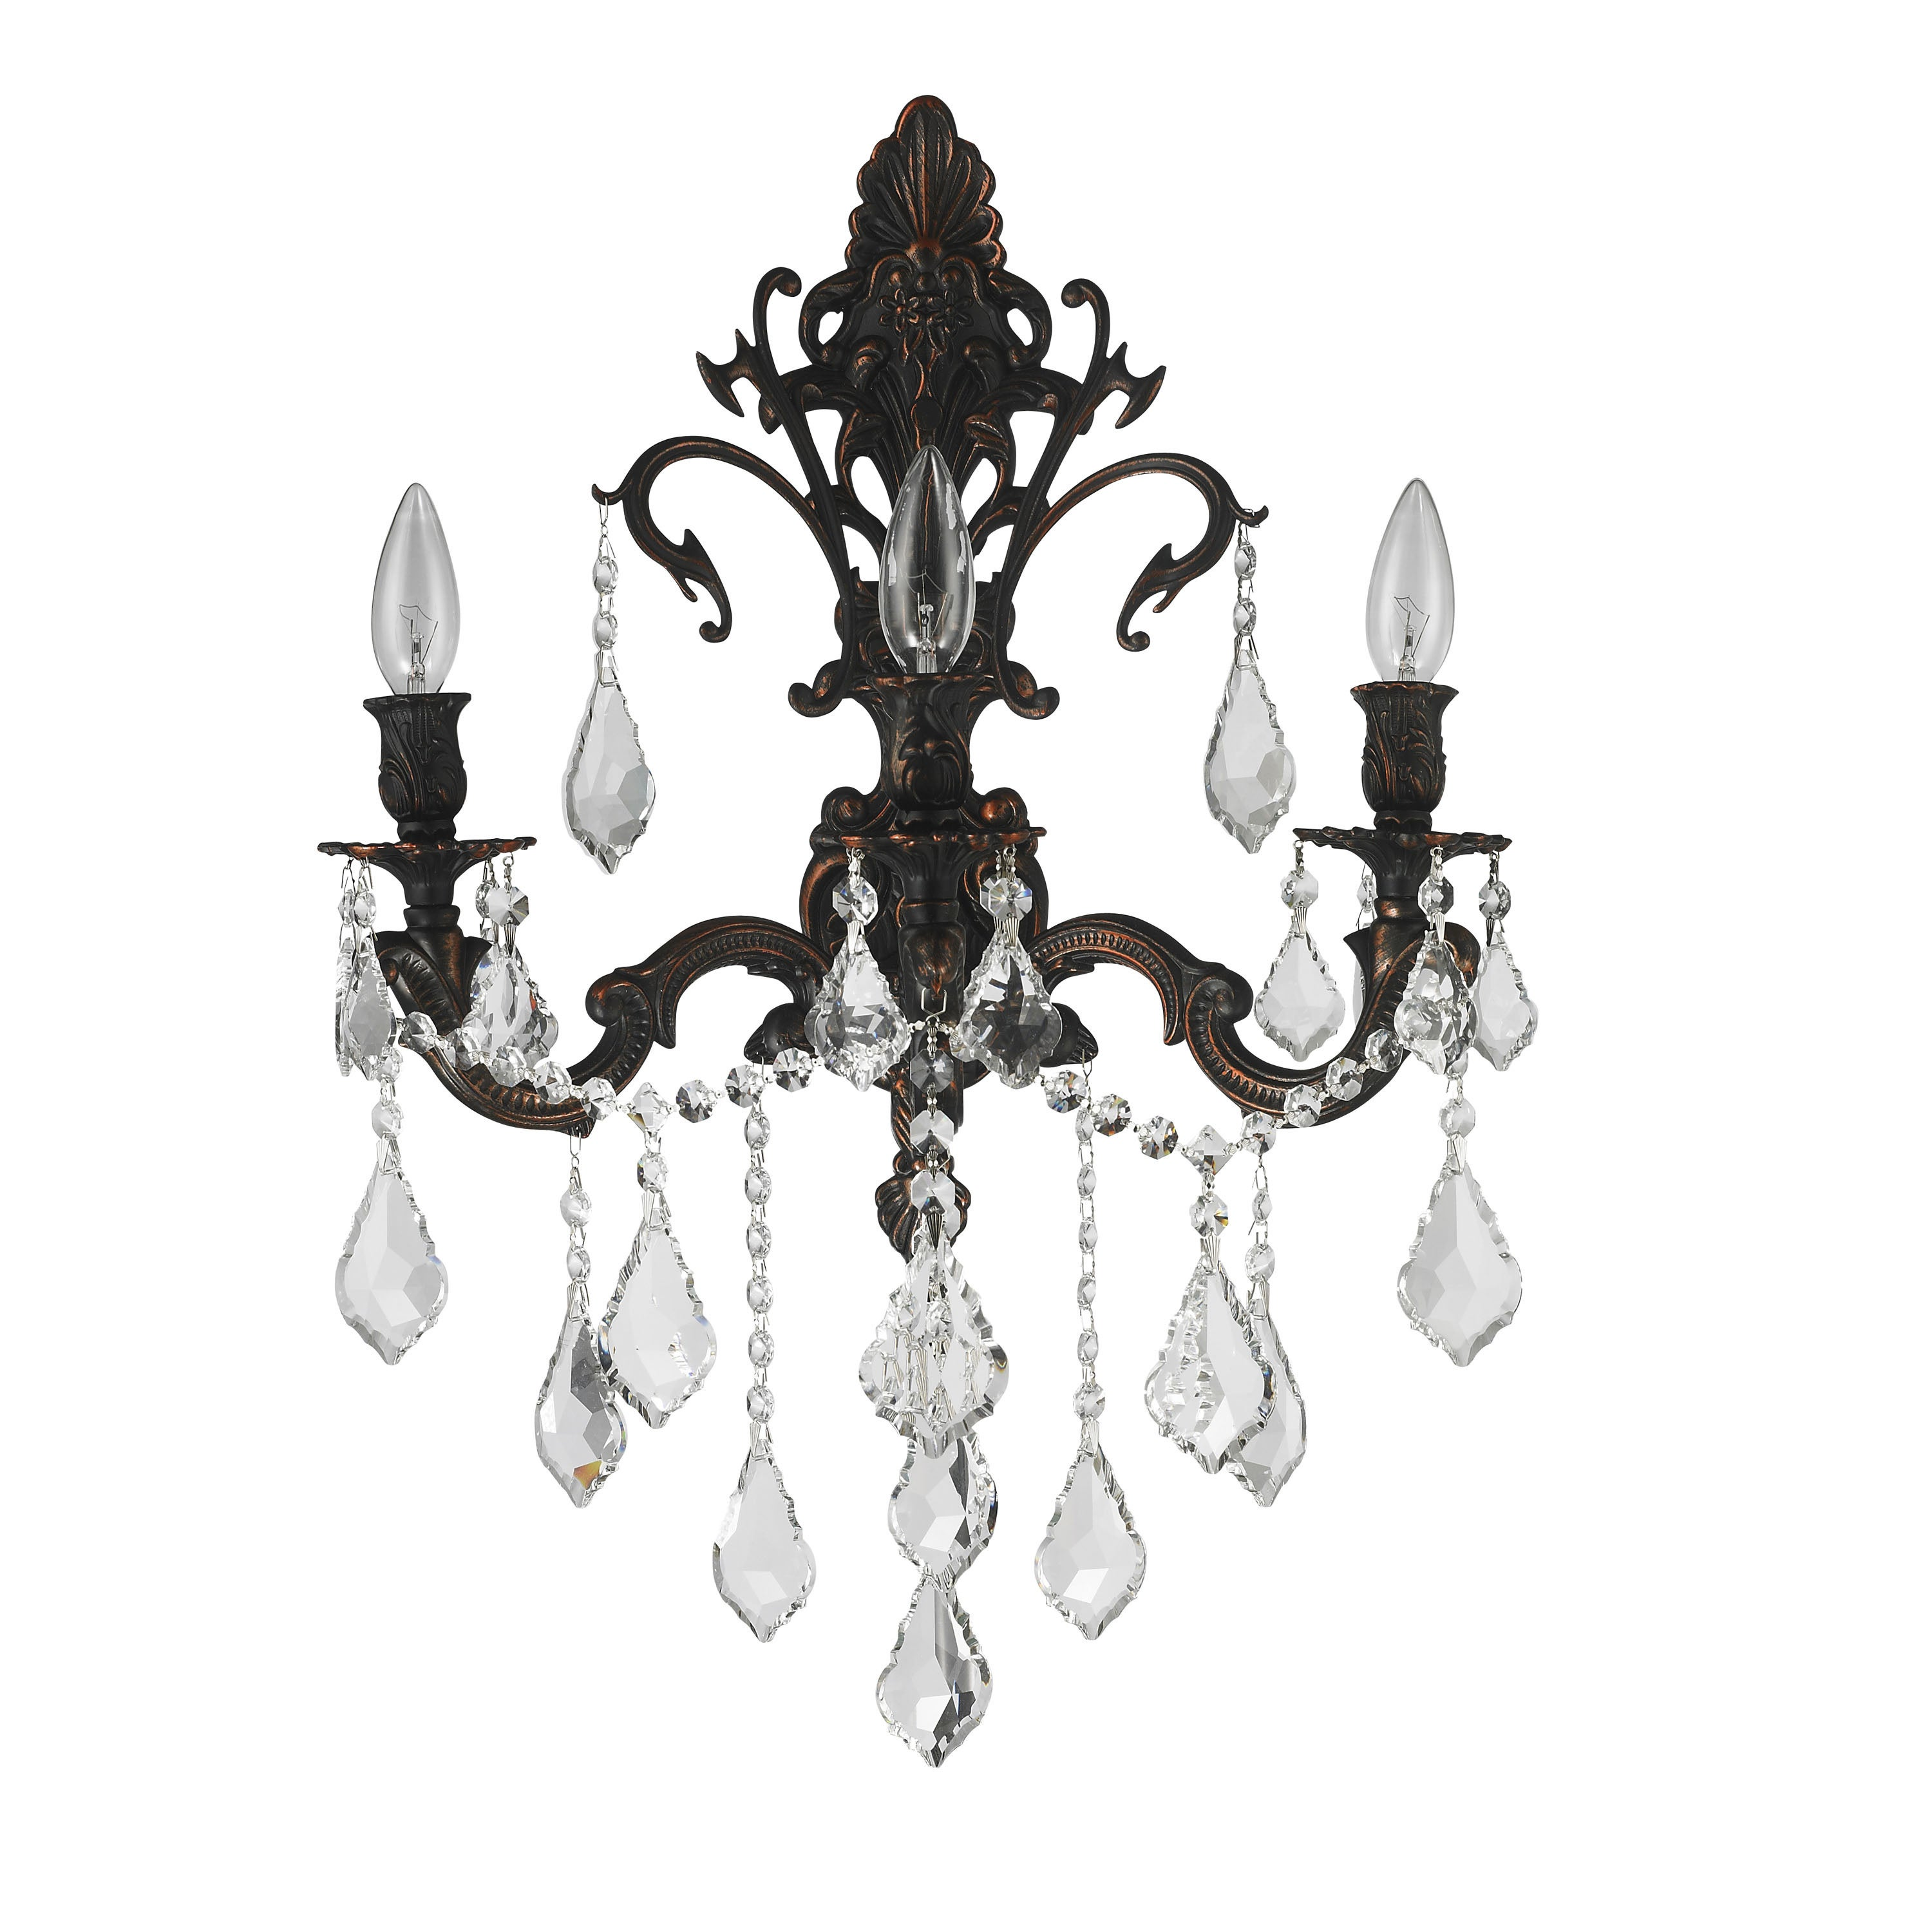 French Royal 3-light Flemish Brass Finish Crystal Candle Wall Sconce Large  - Free Shipping Today - Overstock.com - 17615275